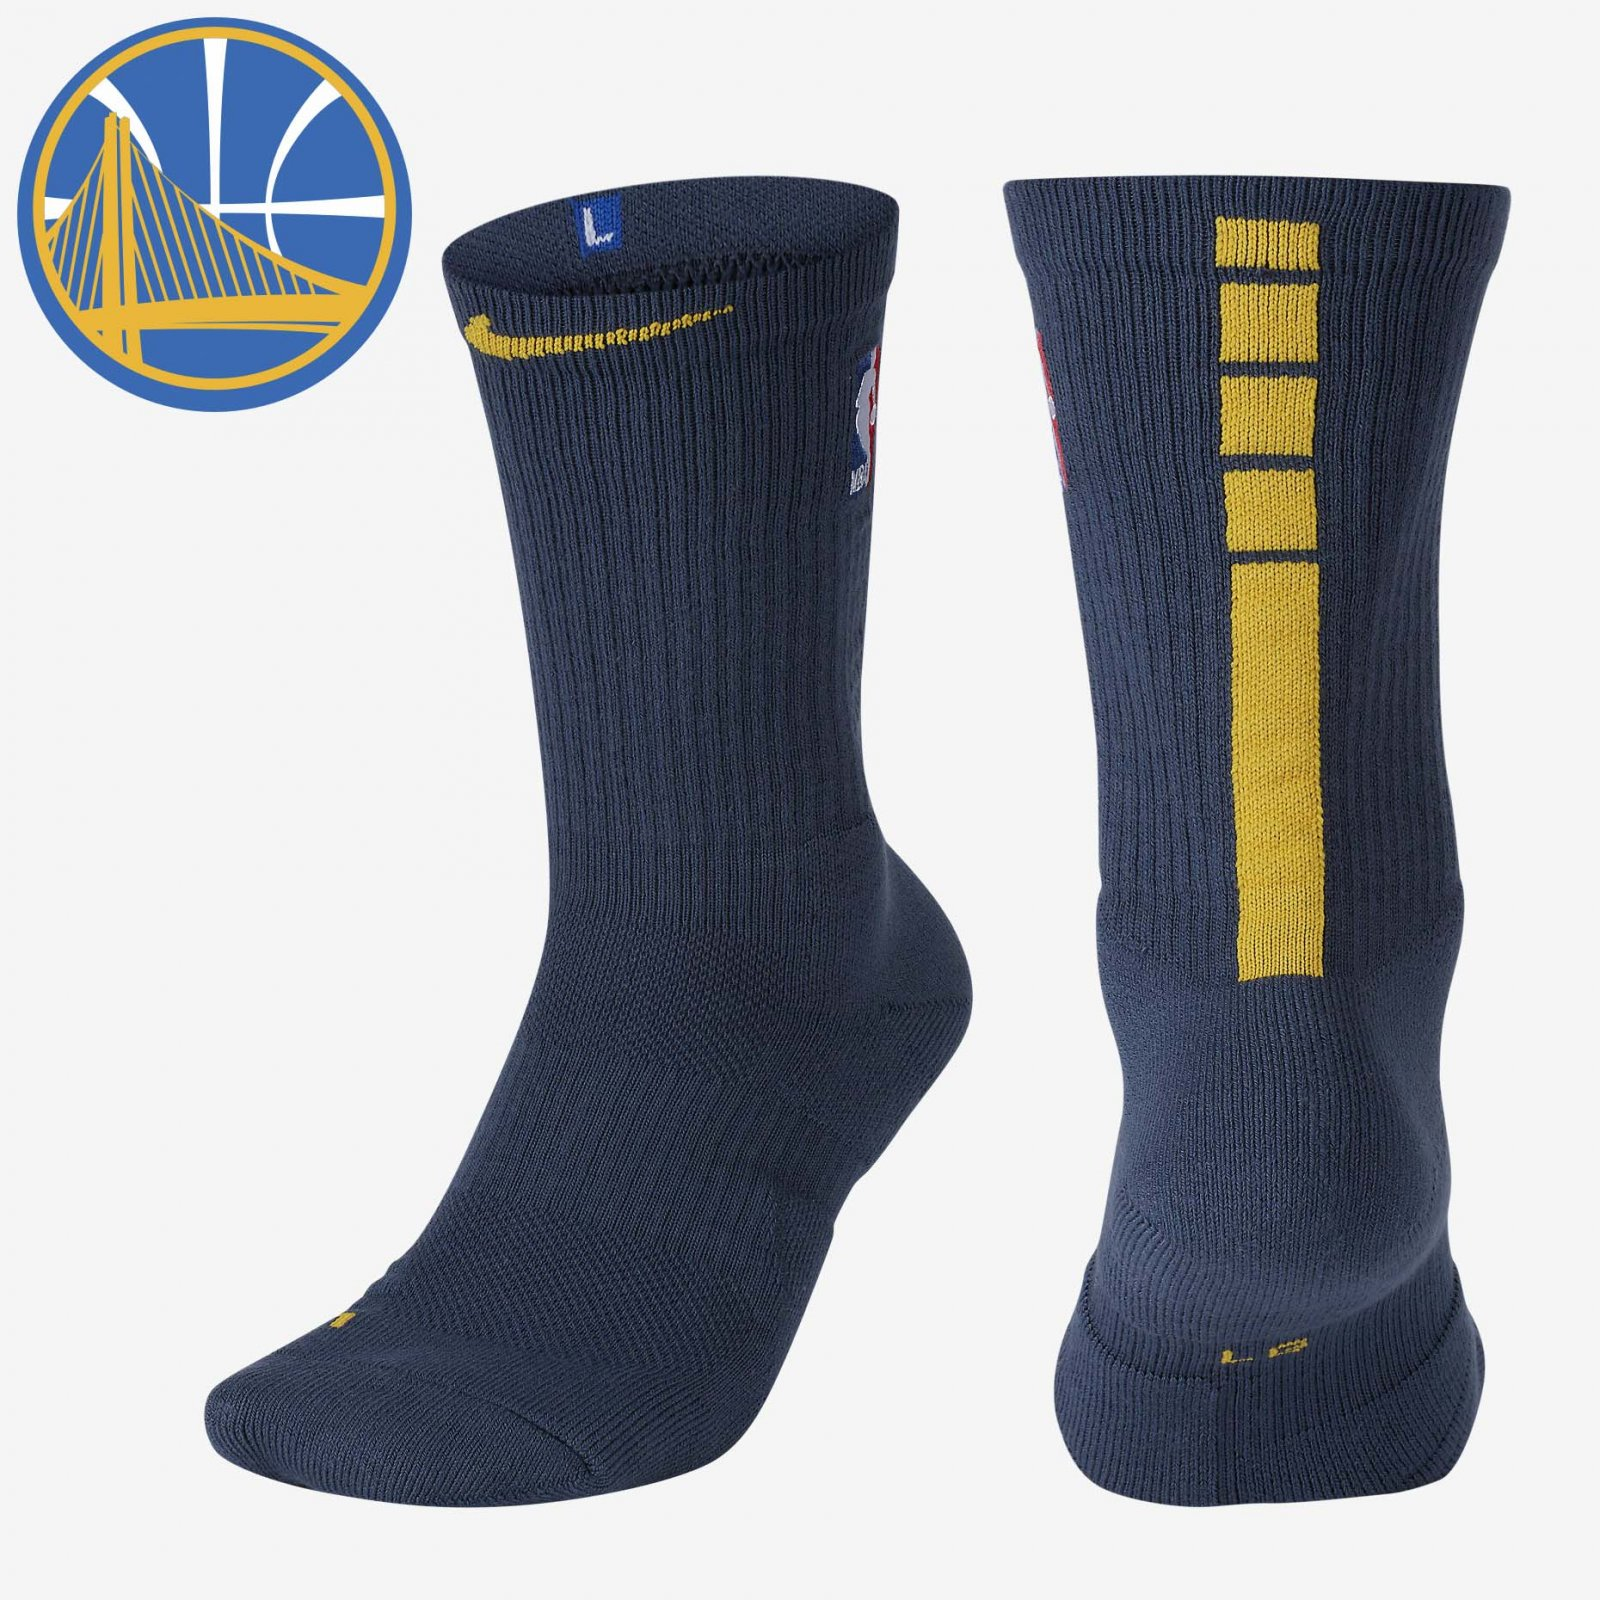 new product 7b23d a4f7c Details about NBA Nike Elite City Edition Crew Golden State Warriors GSW  Socks SX5981-471